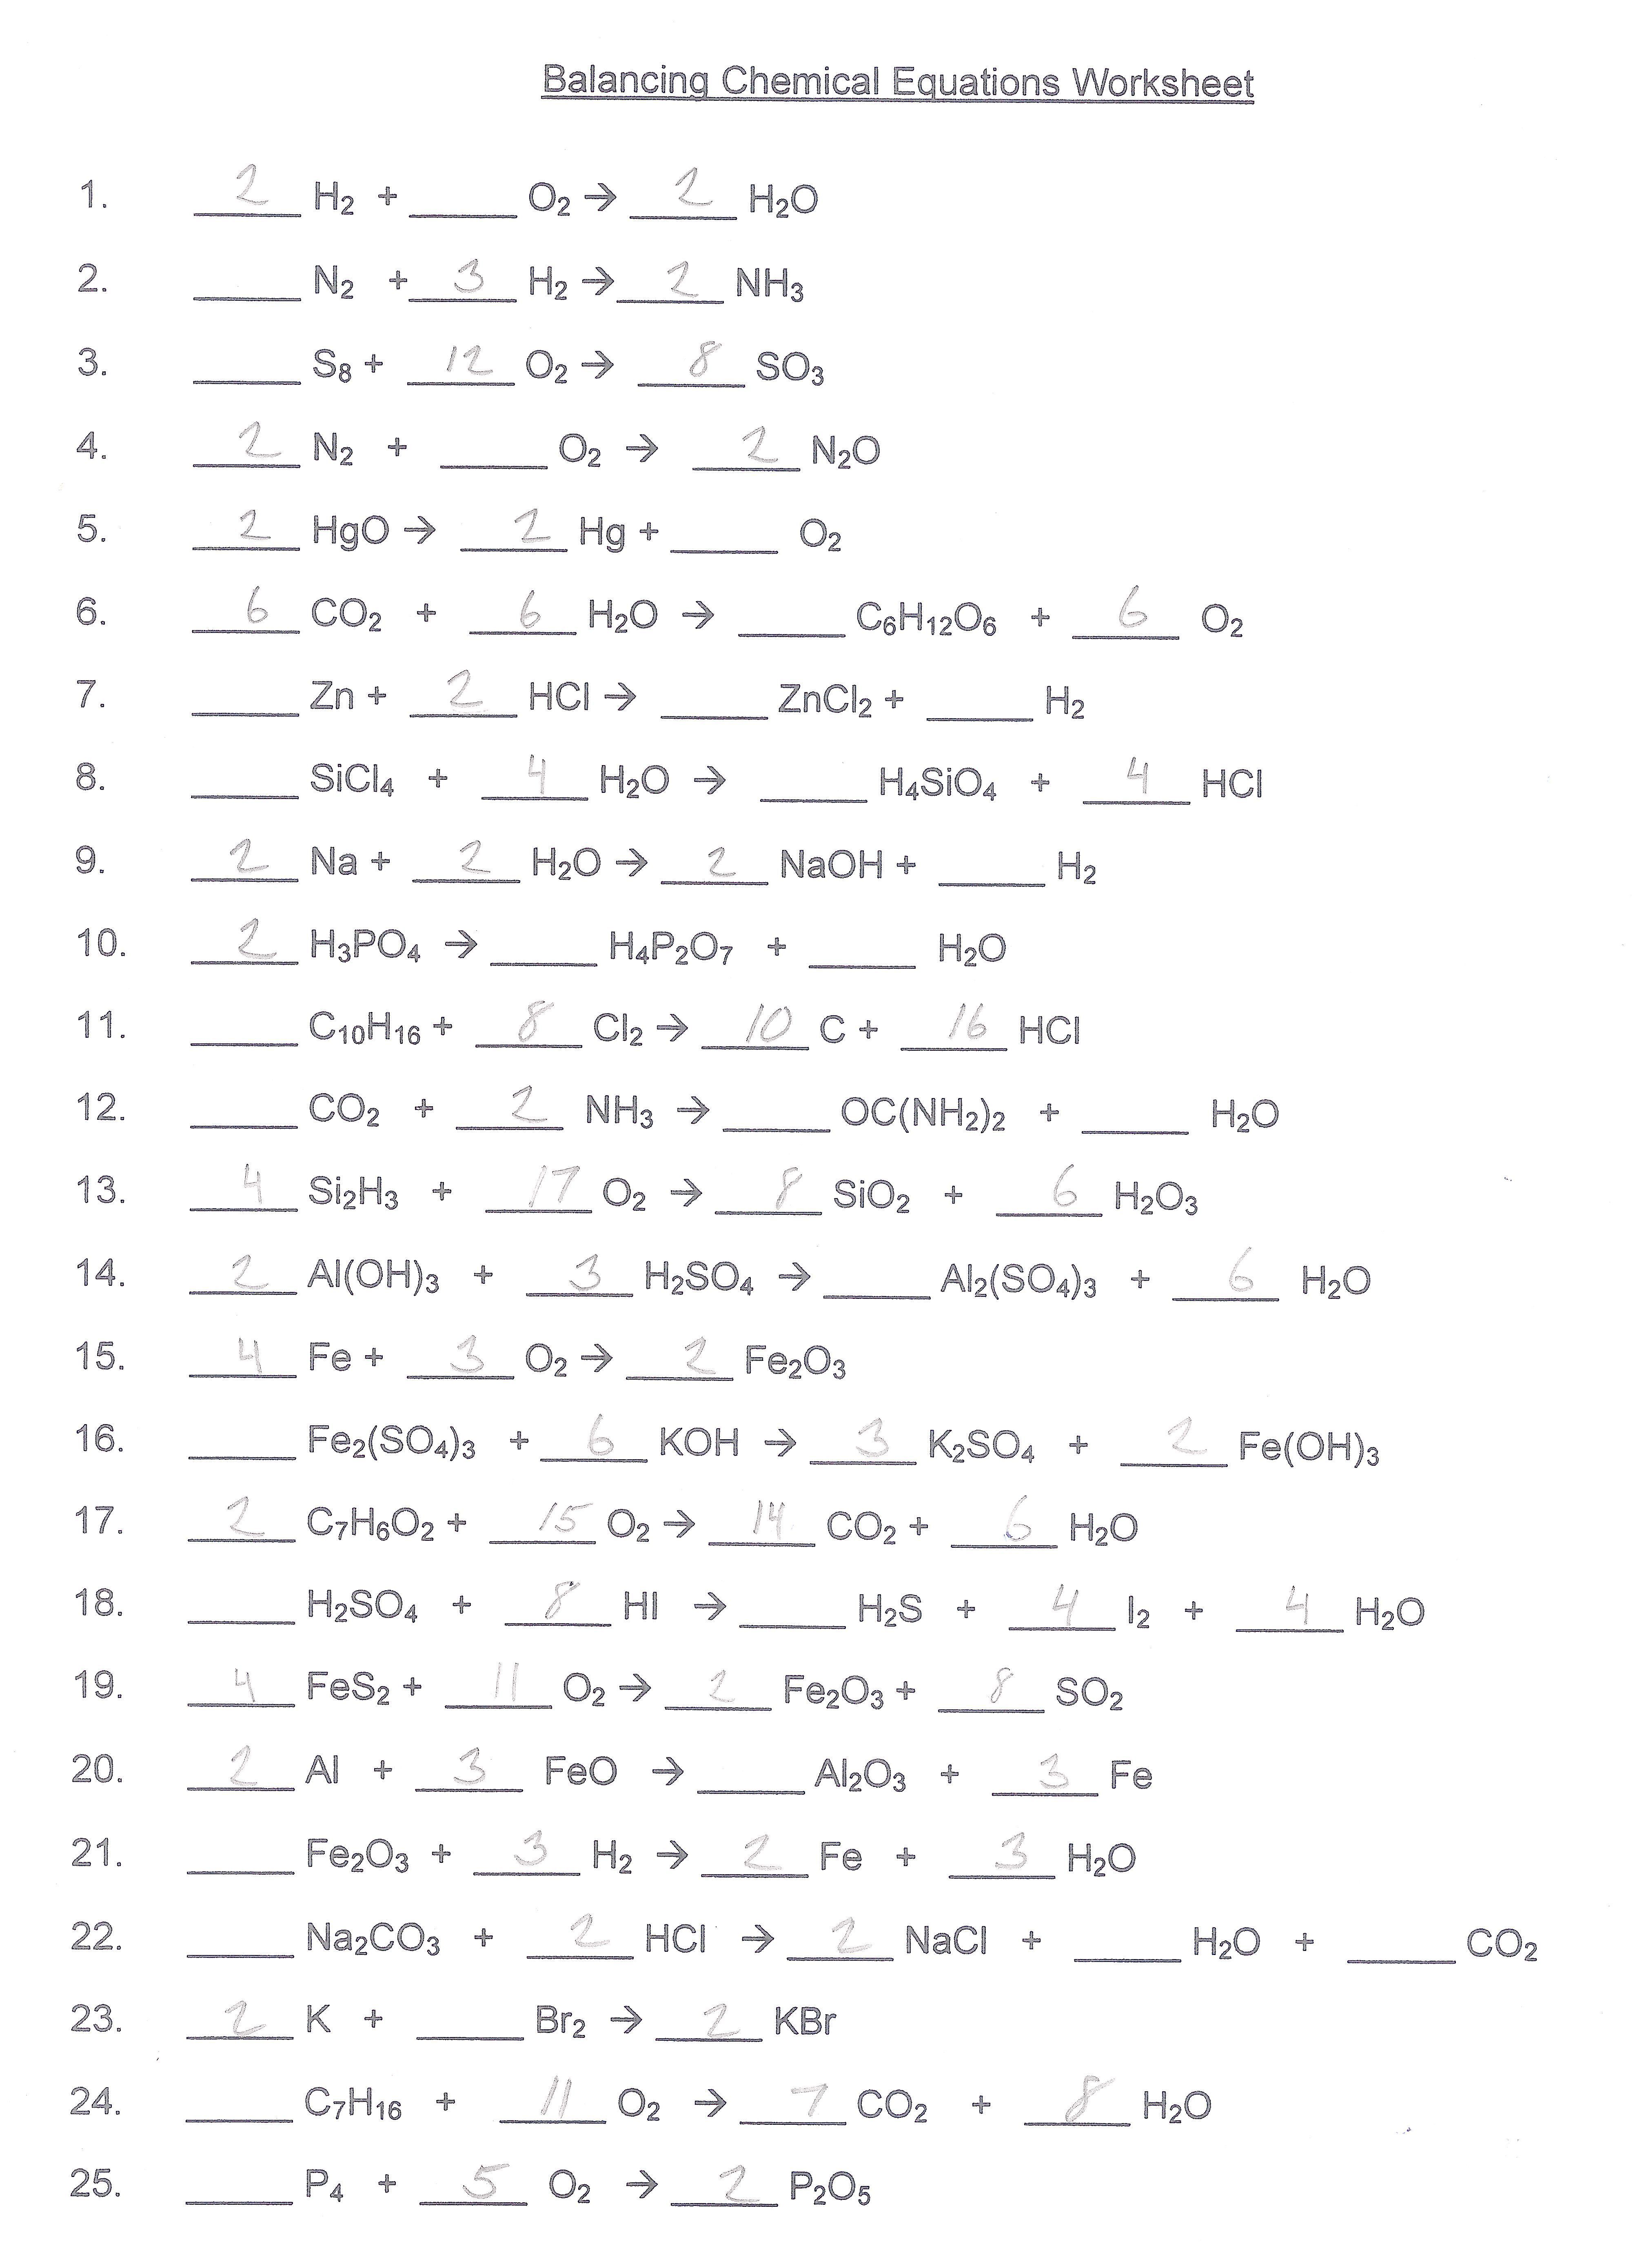 Writing Chemical Equations Worksheets With Answers By